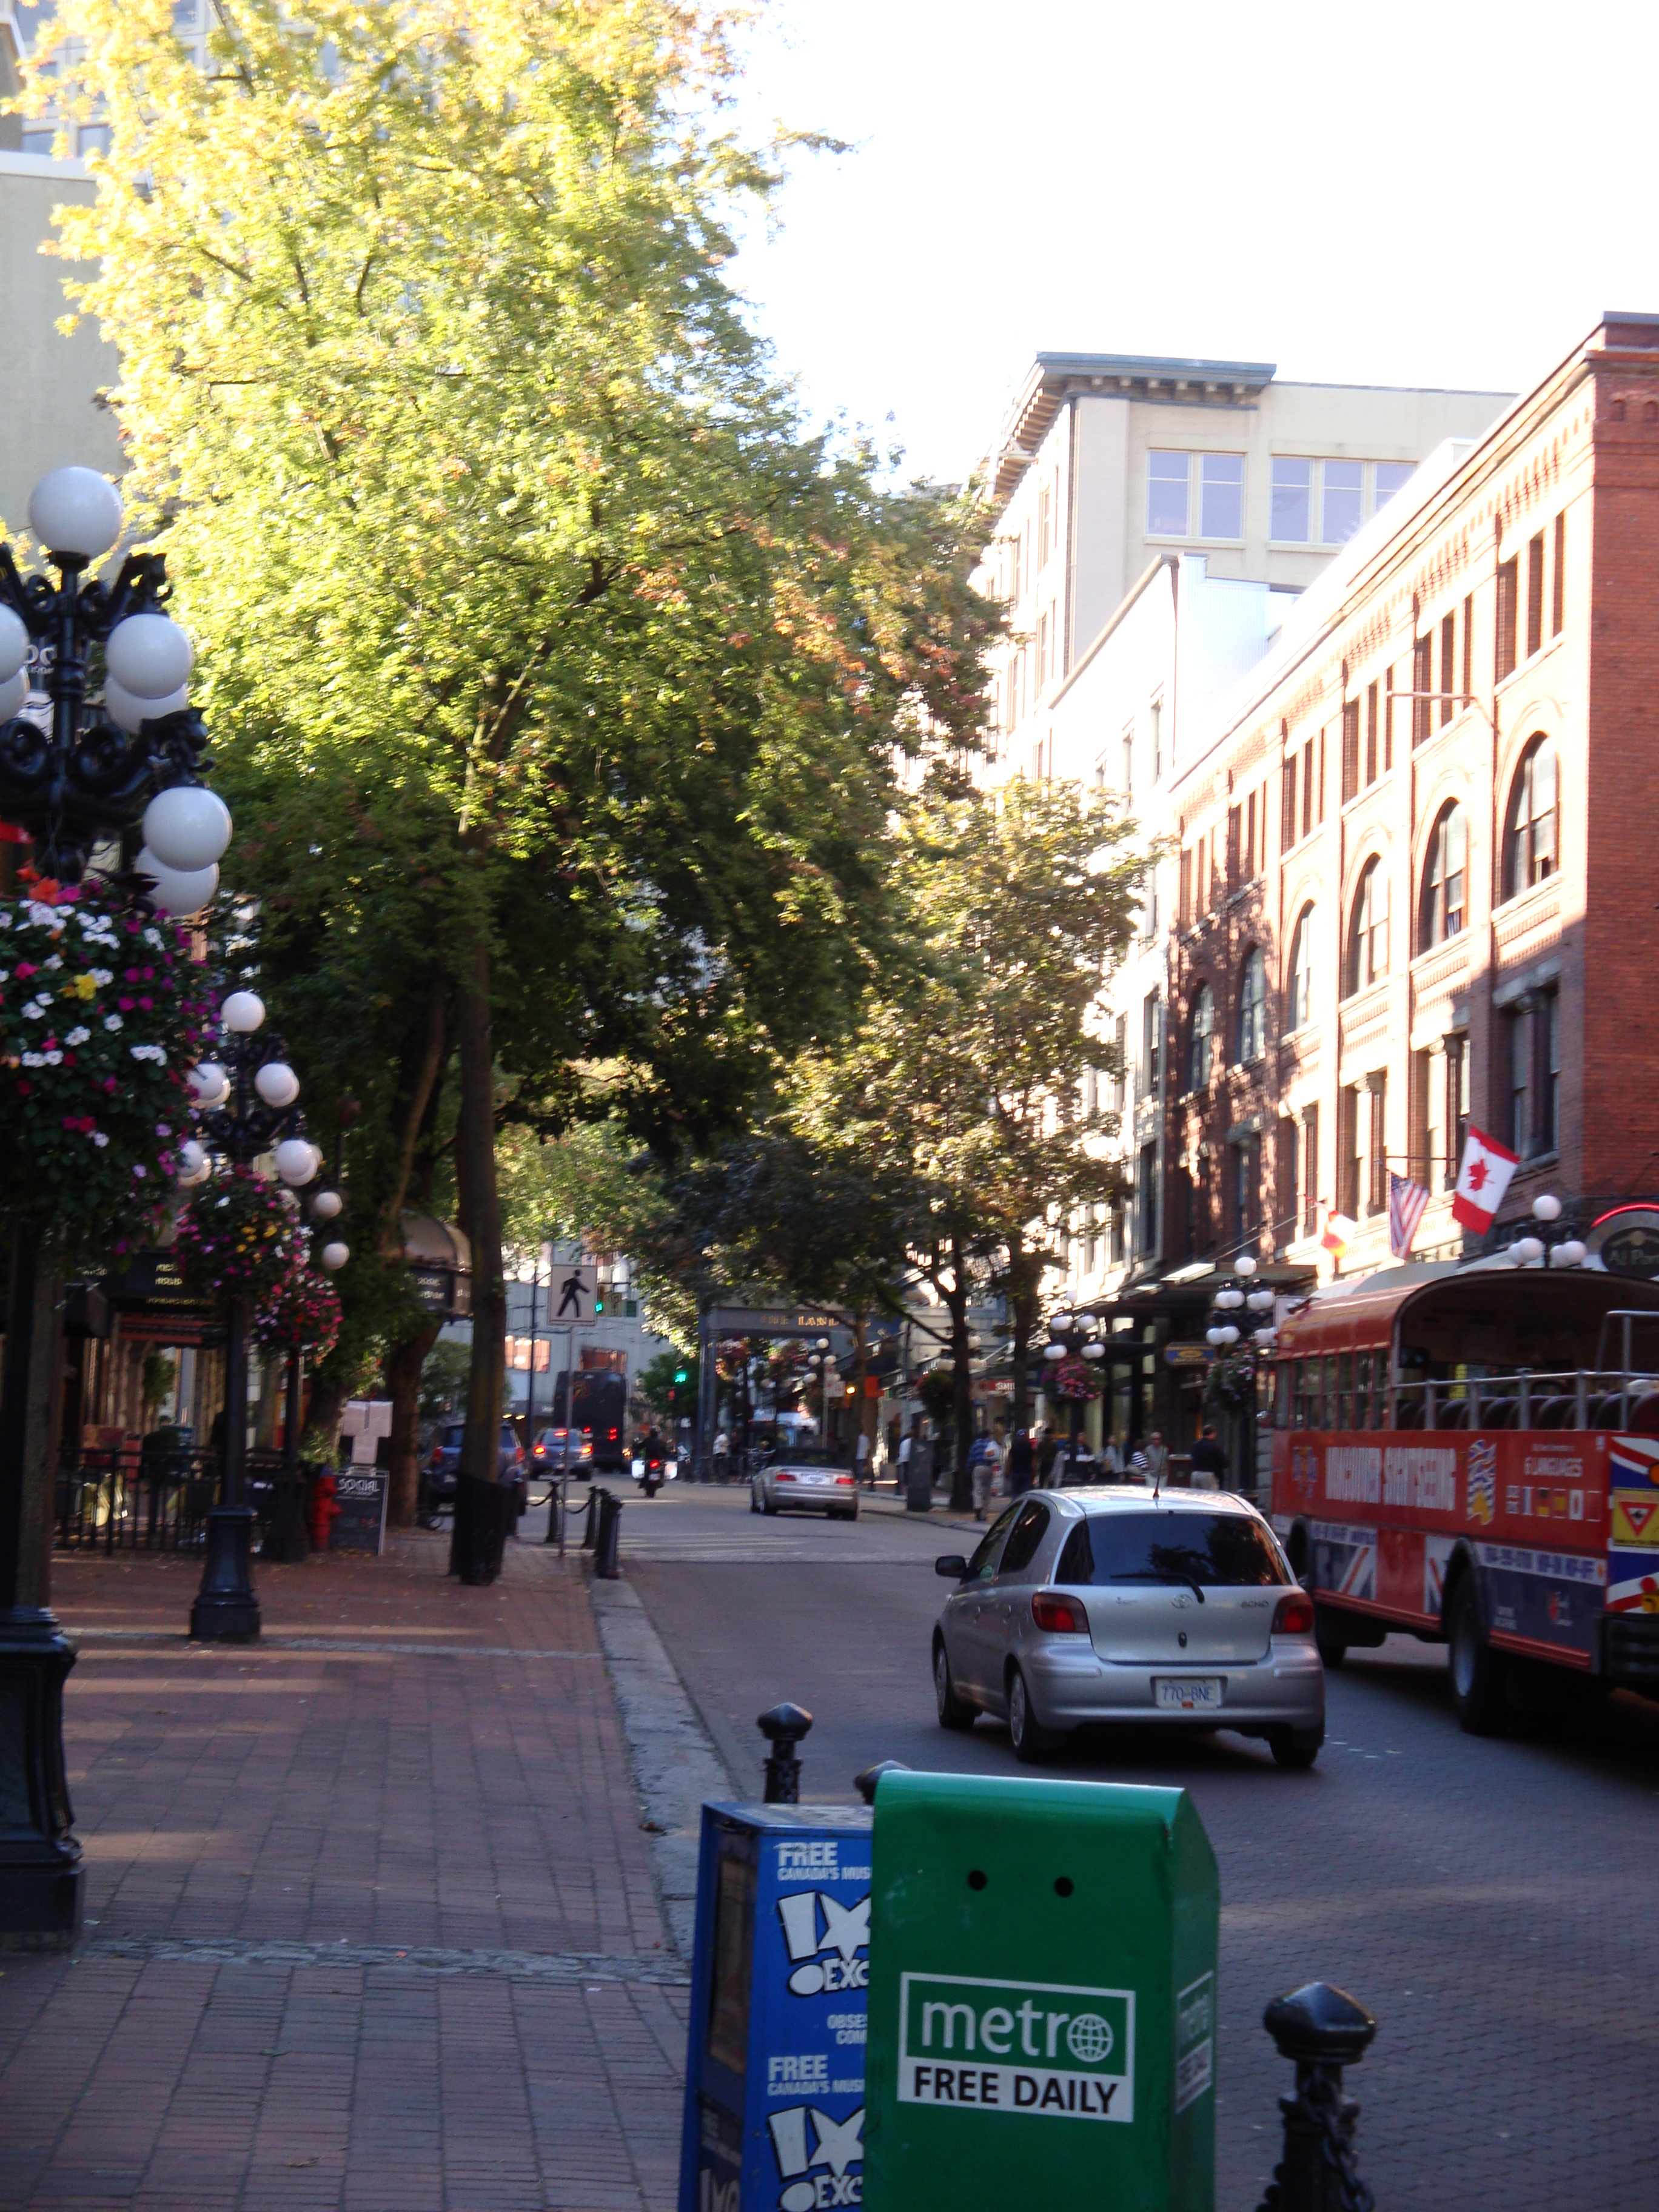 Charming, Historic, and Wealthy Gastown